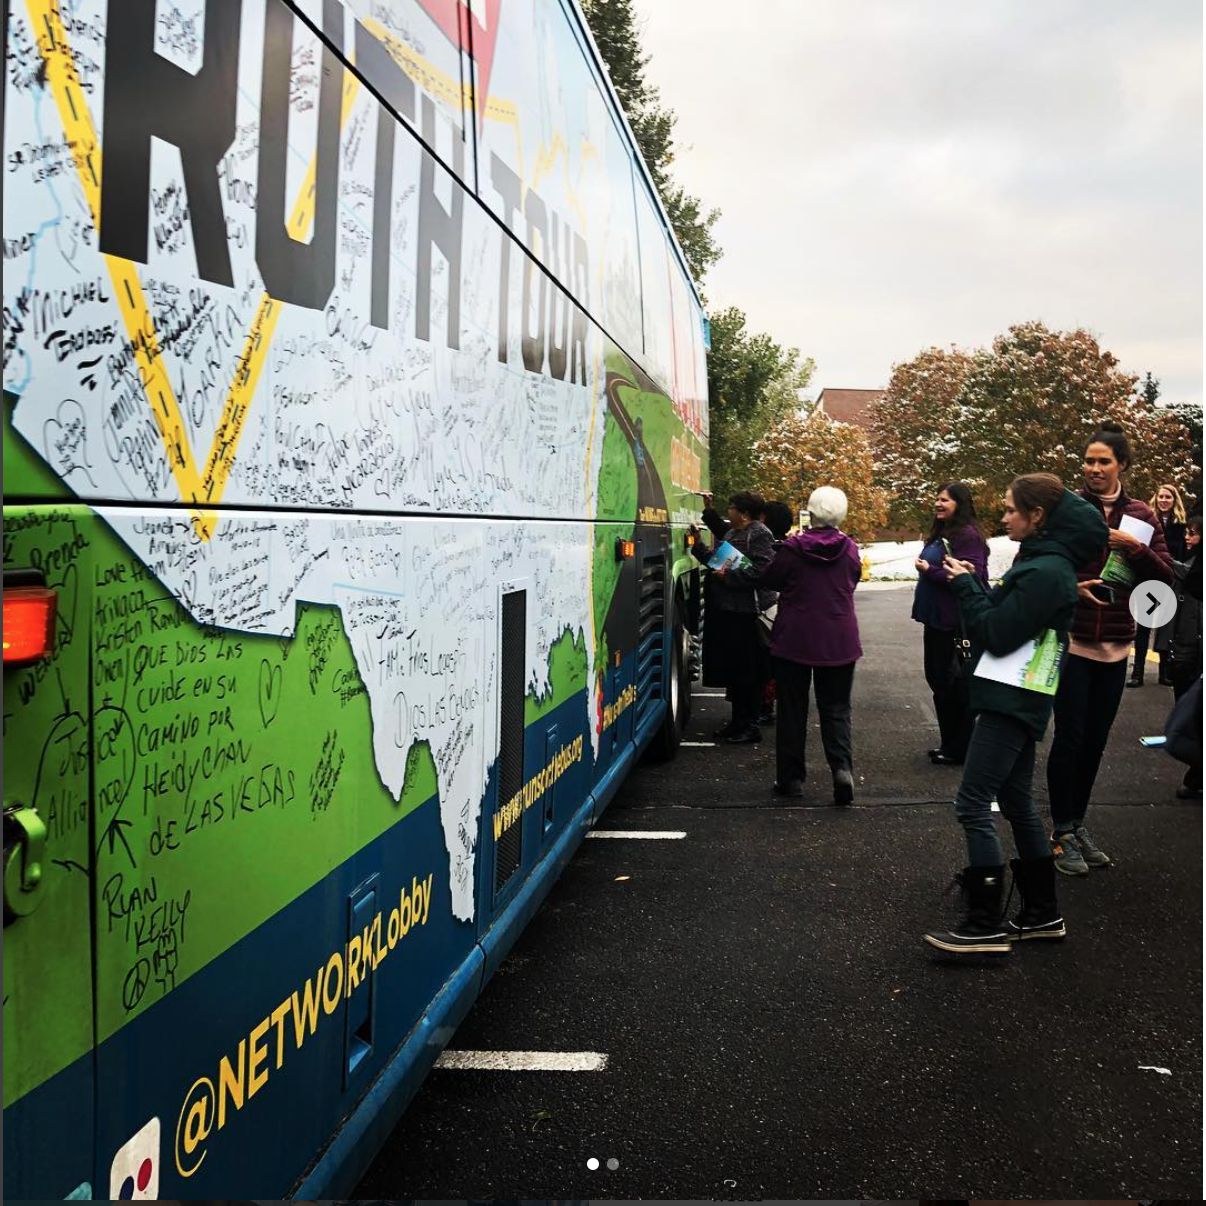 The Nun's Bus in all it's glory on Regis' campus //Frances Meng-Frecker